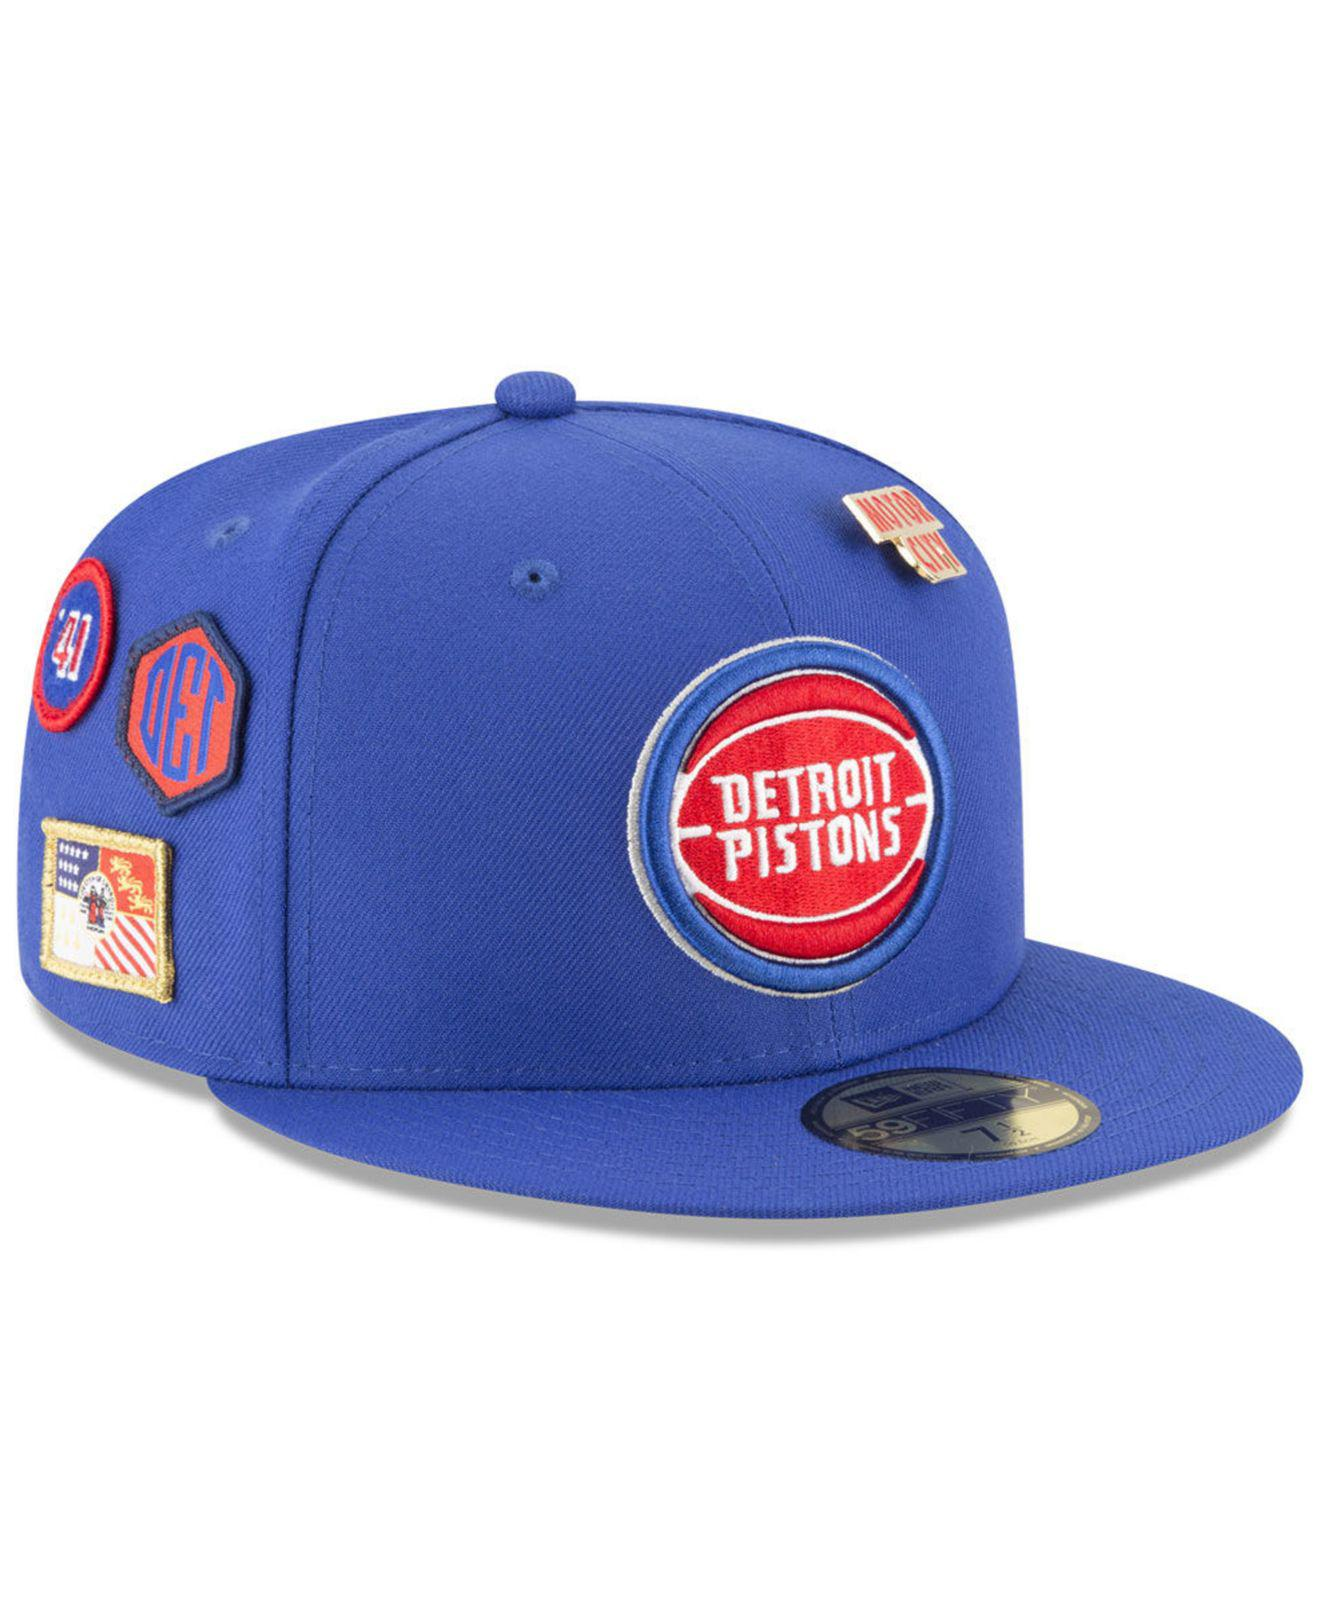 new product 8dd81 19c30 KTZ. Men s Blue Detroit Pistons On-court Collection 59fifty Fitted Cap